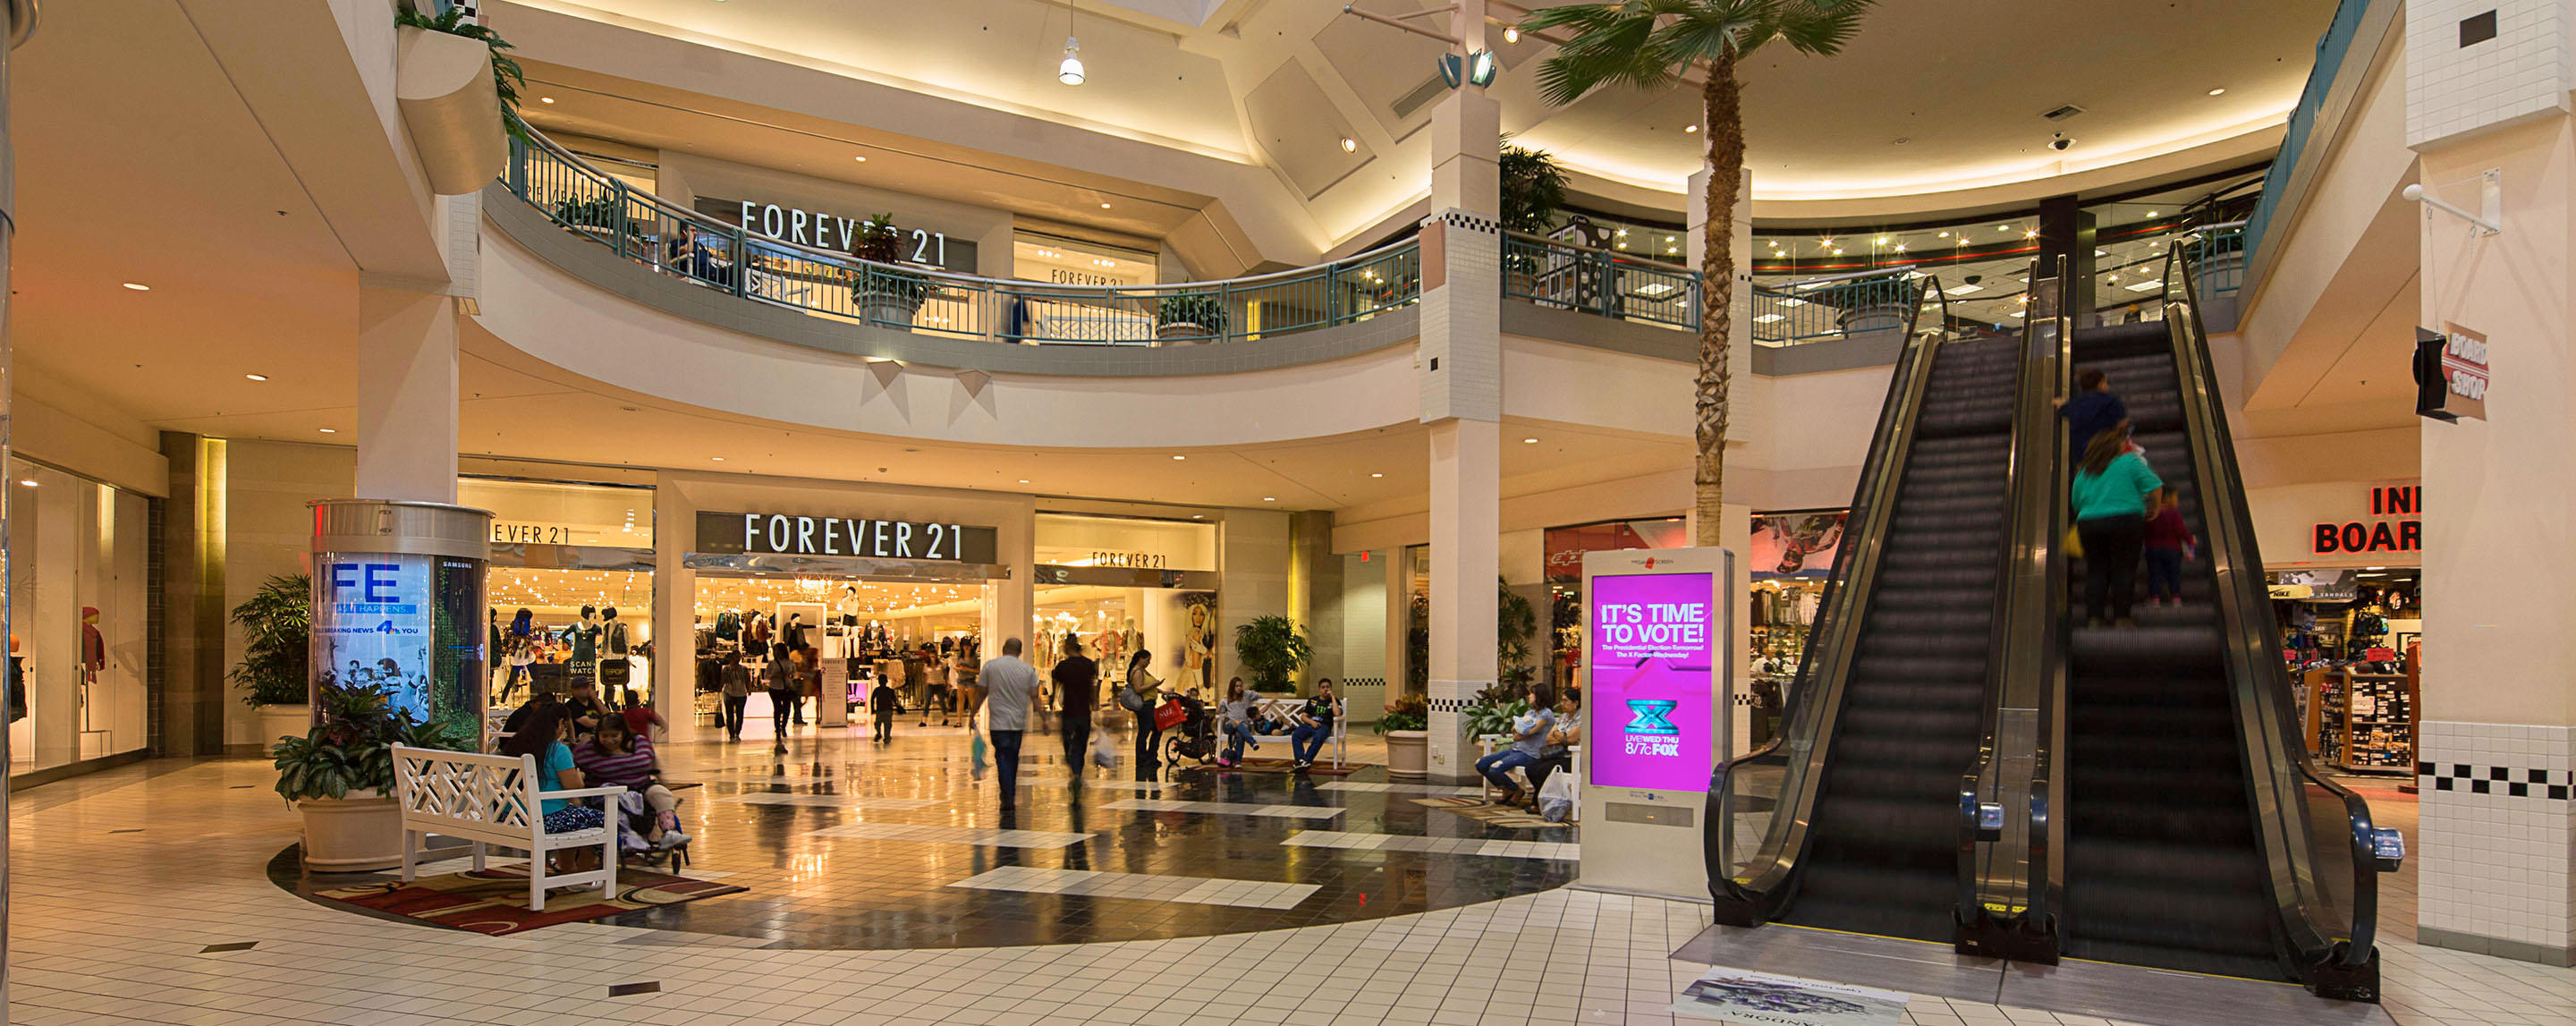 galleria at tyler shopping centers malls riverside